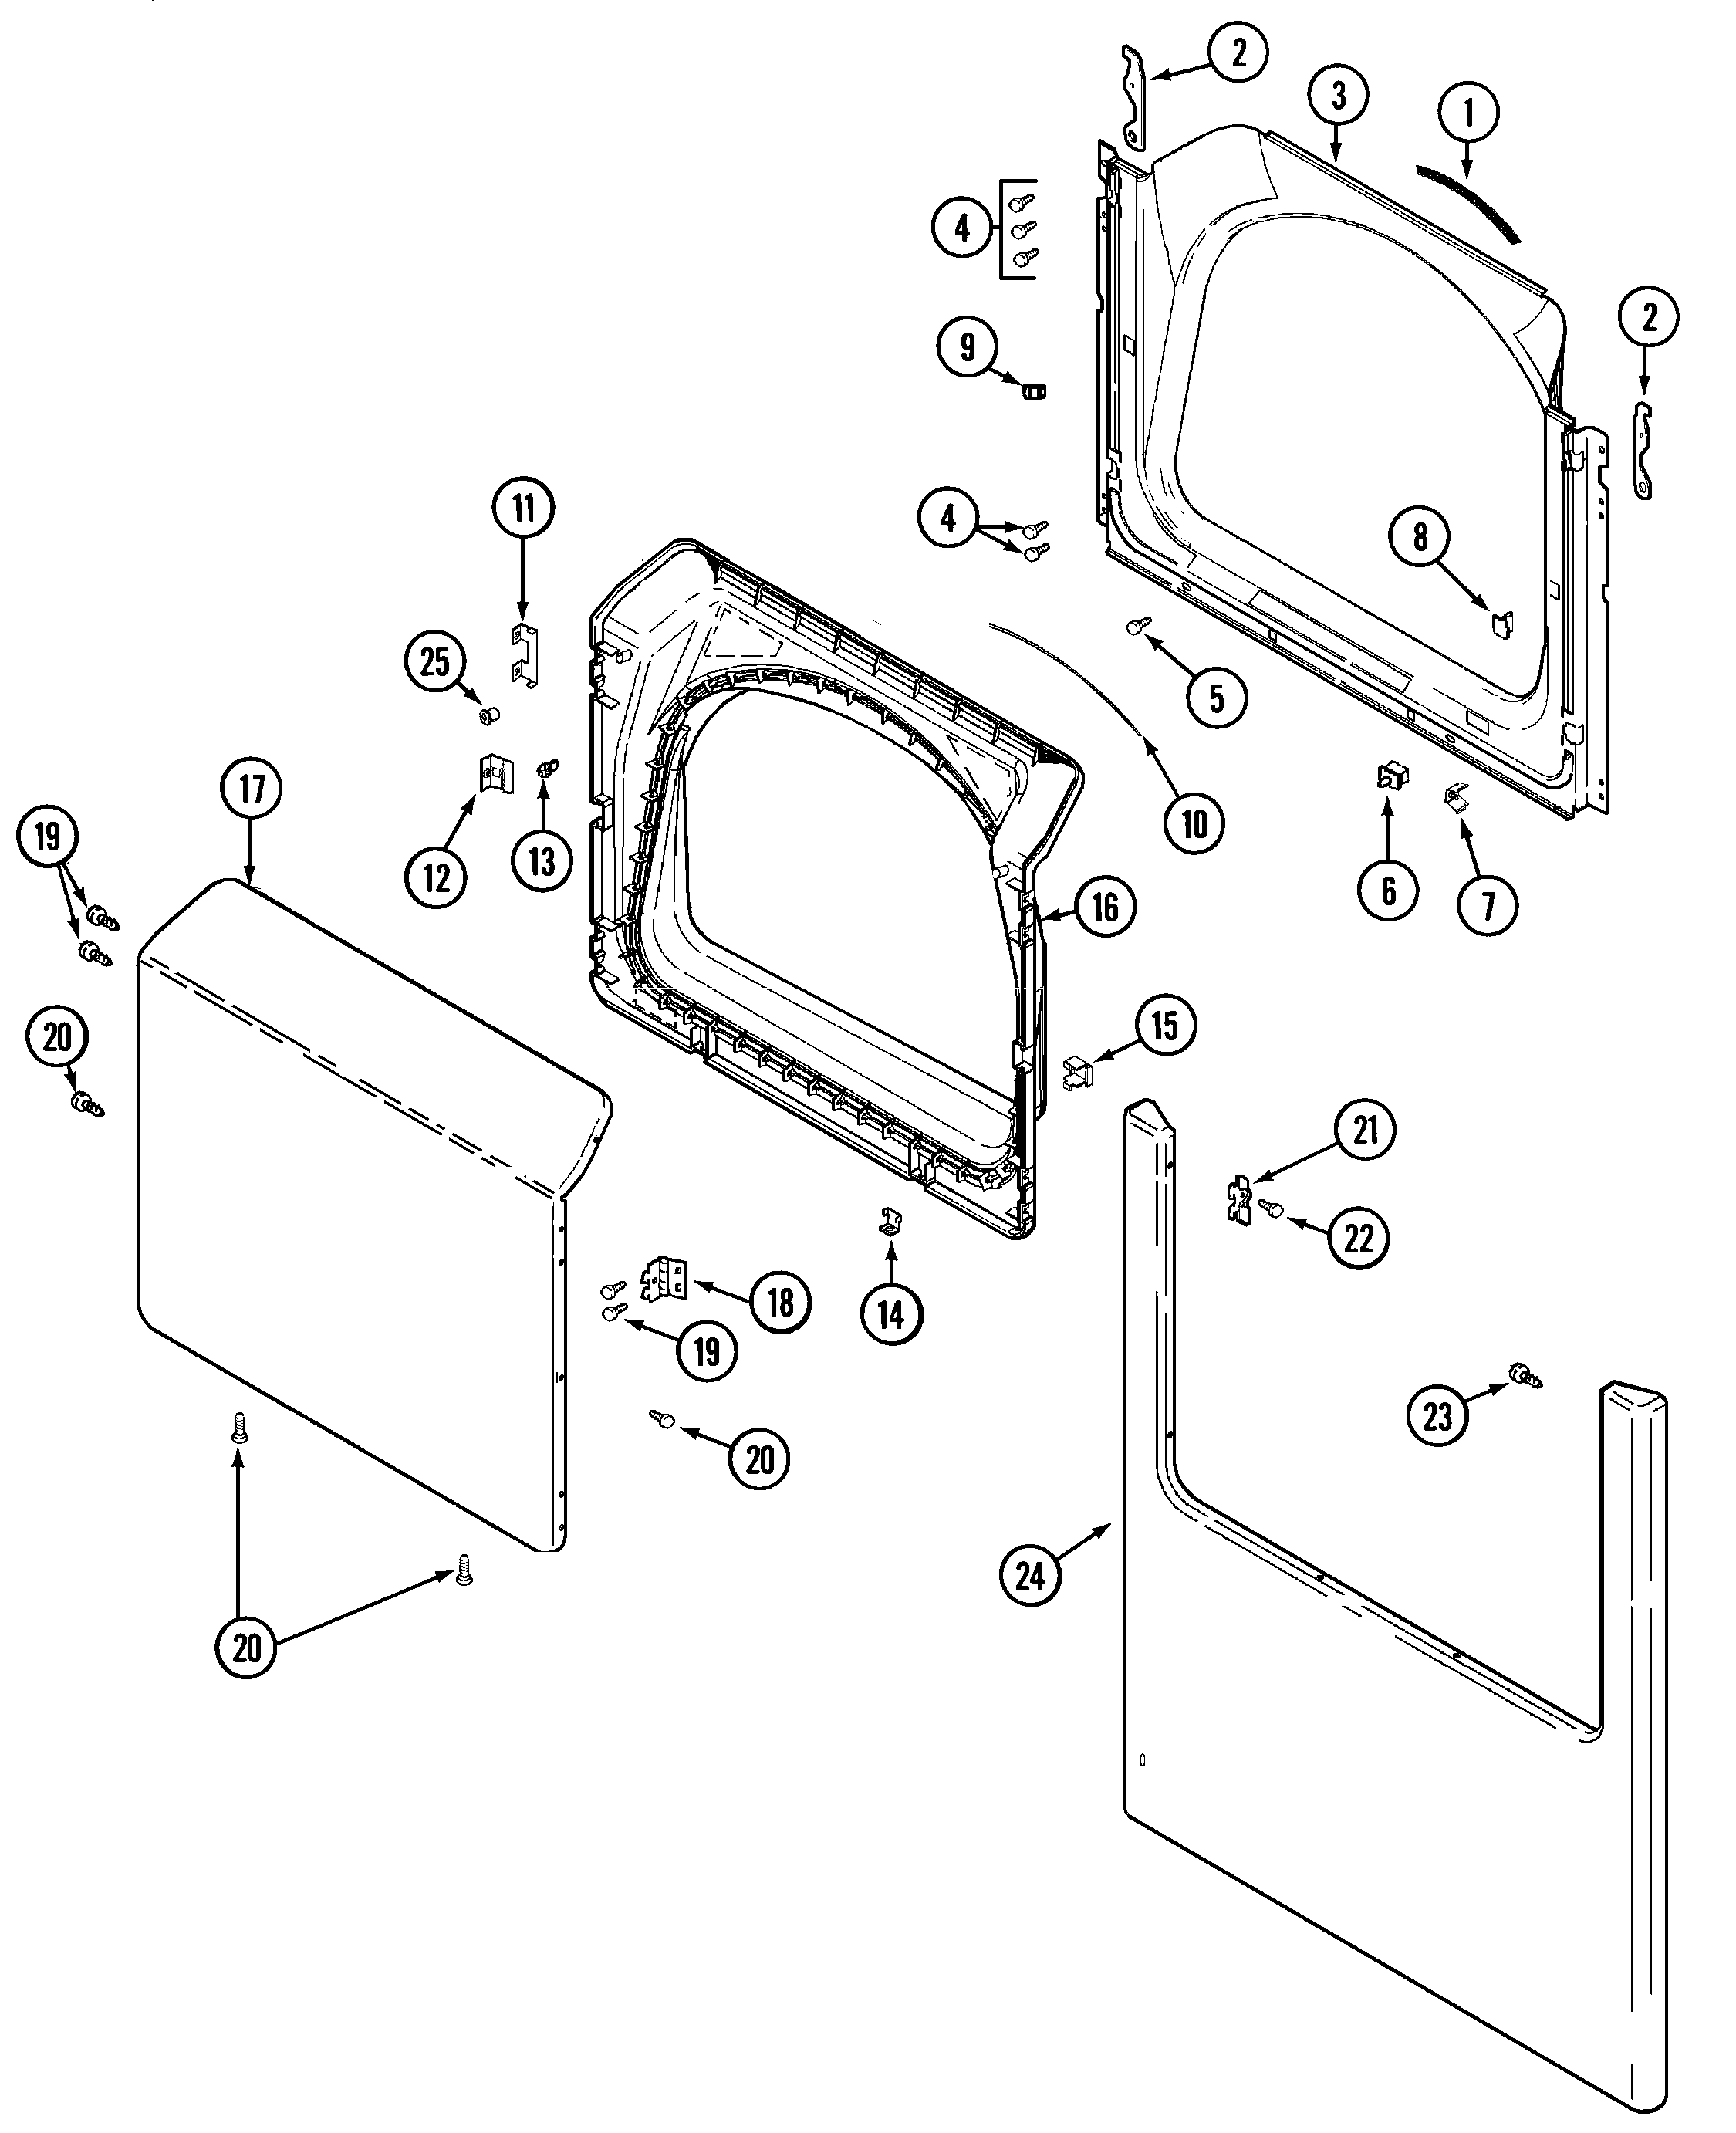 Maytag Model Mde6200ayw Residential Dryer Genuine Parts Belt Replacement Diagram